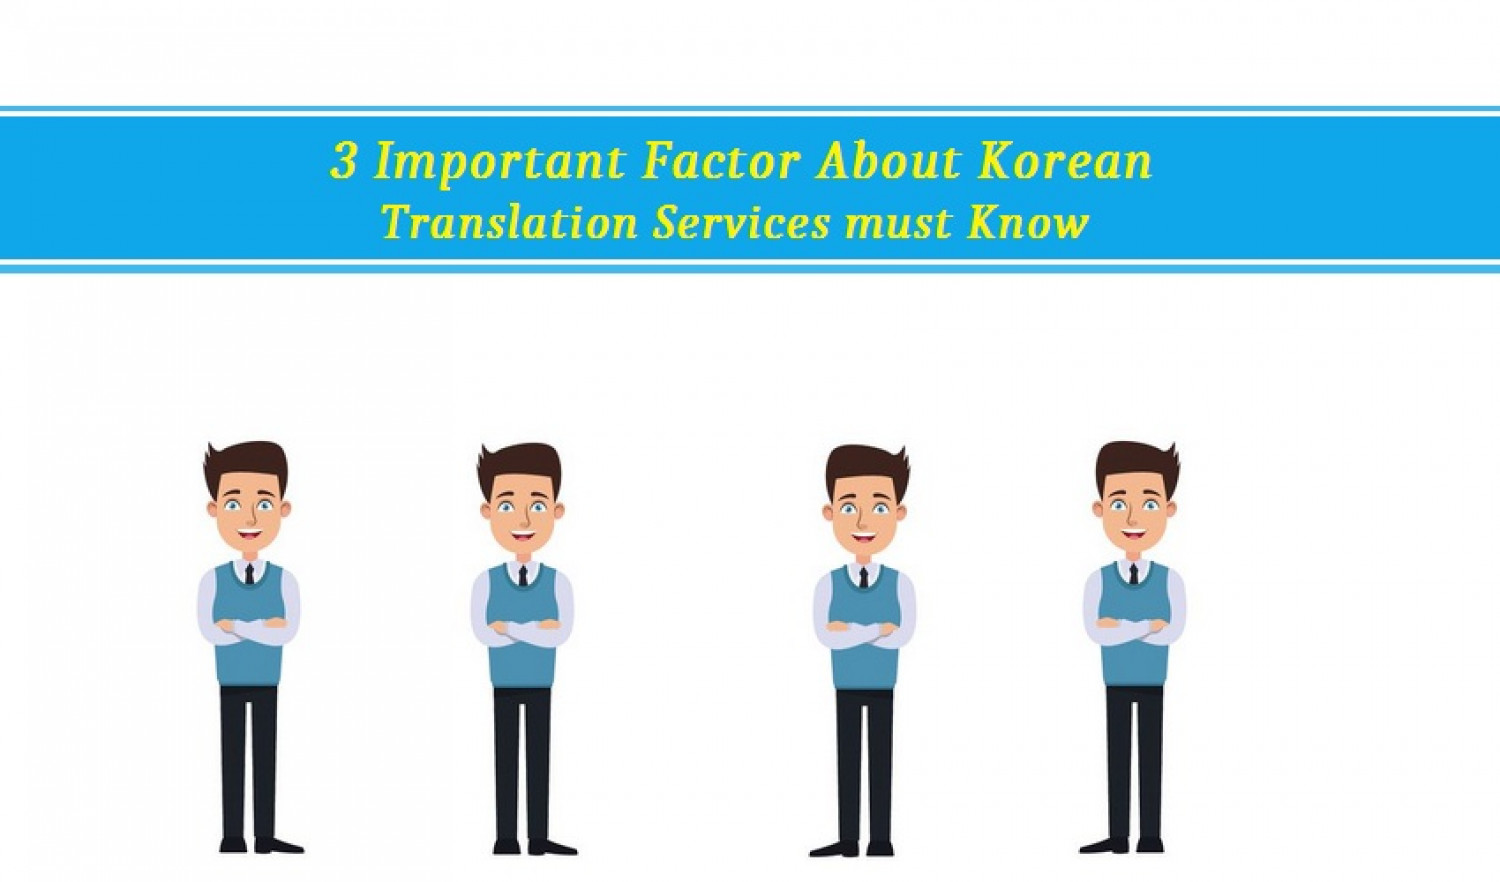 3 Important Factor About Korean Translation Services must Know Infographic